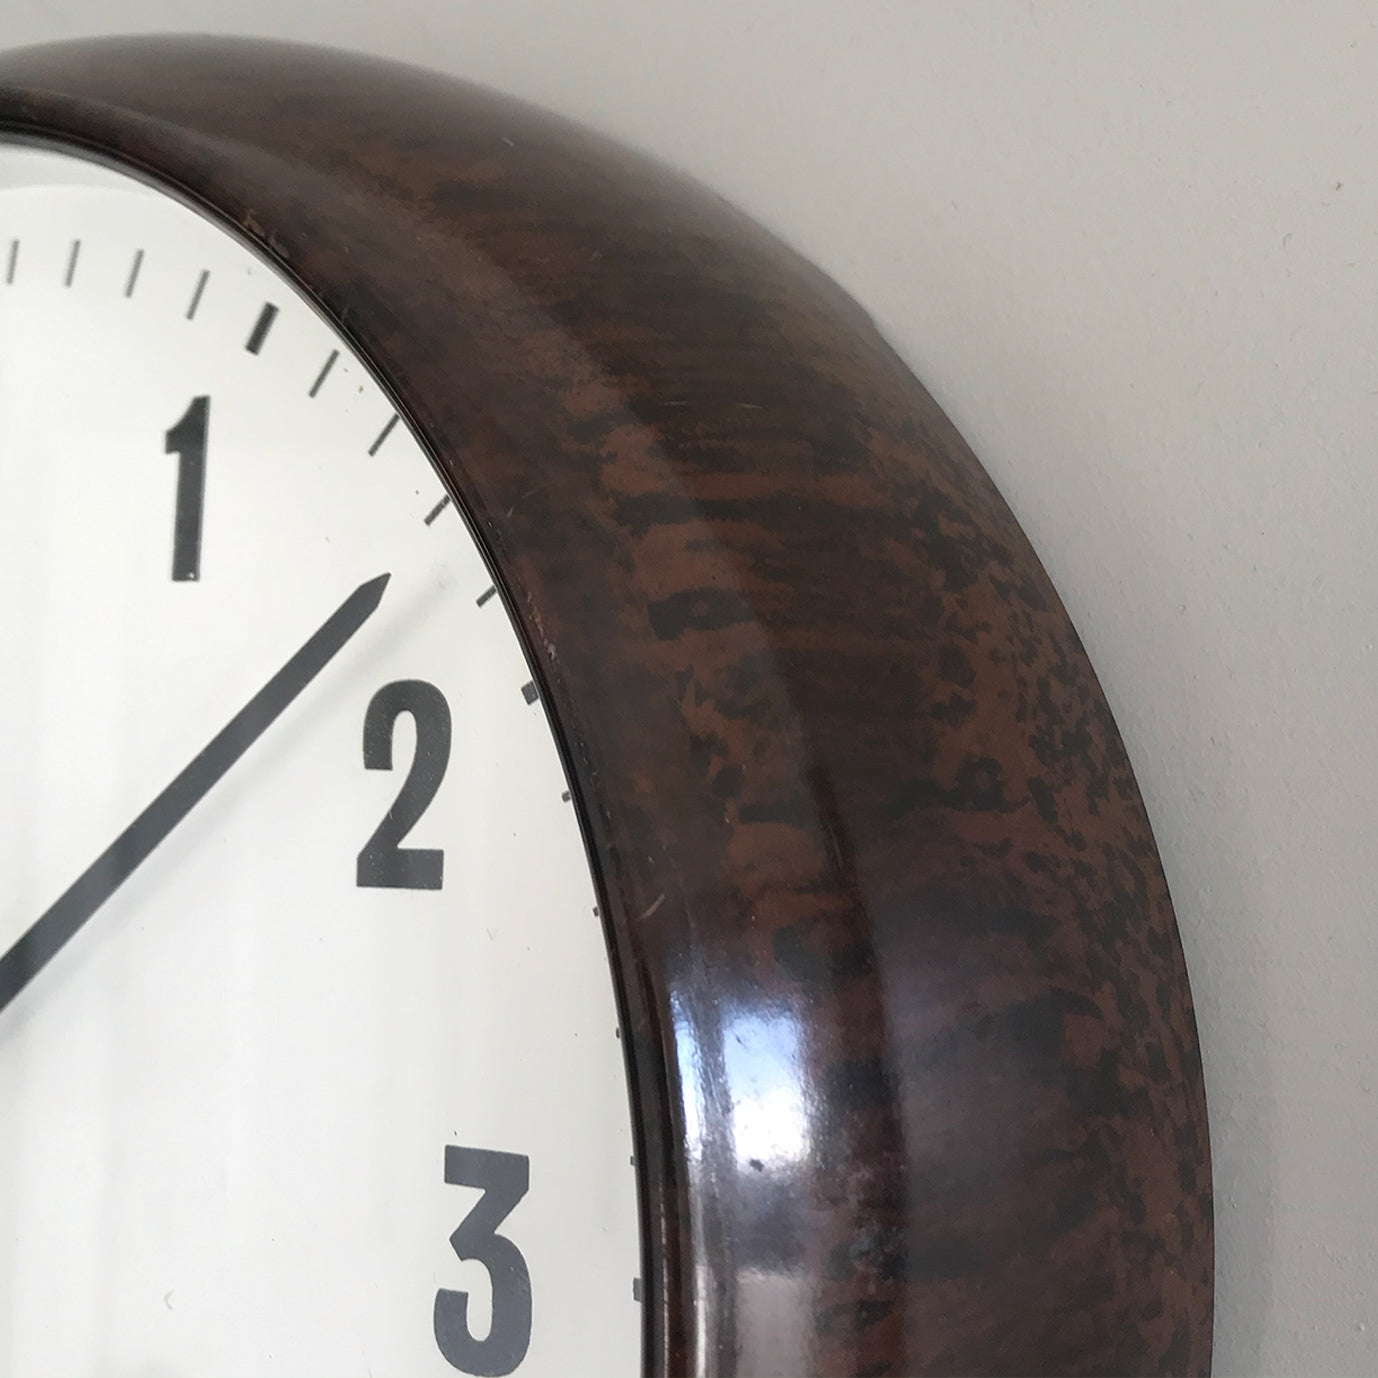 Vintage industrial/office electric Smith's wall clock from the 1940s, made by the English clock company Smiths. Made from brown/Tortoiseshell Bakelite which is in nice clean condition having been polished and waxed, with a white dial and retaining its original hands - SHOP NOW - www.intovintage.co.uk